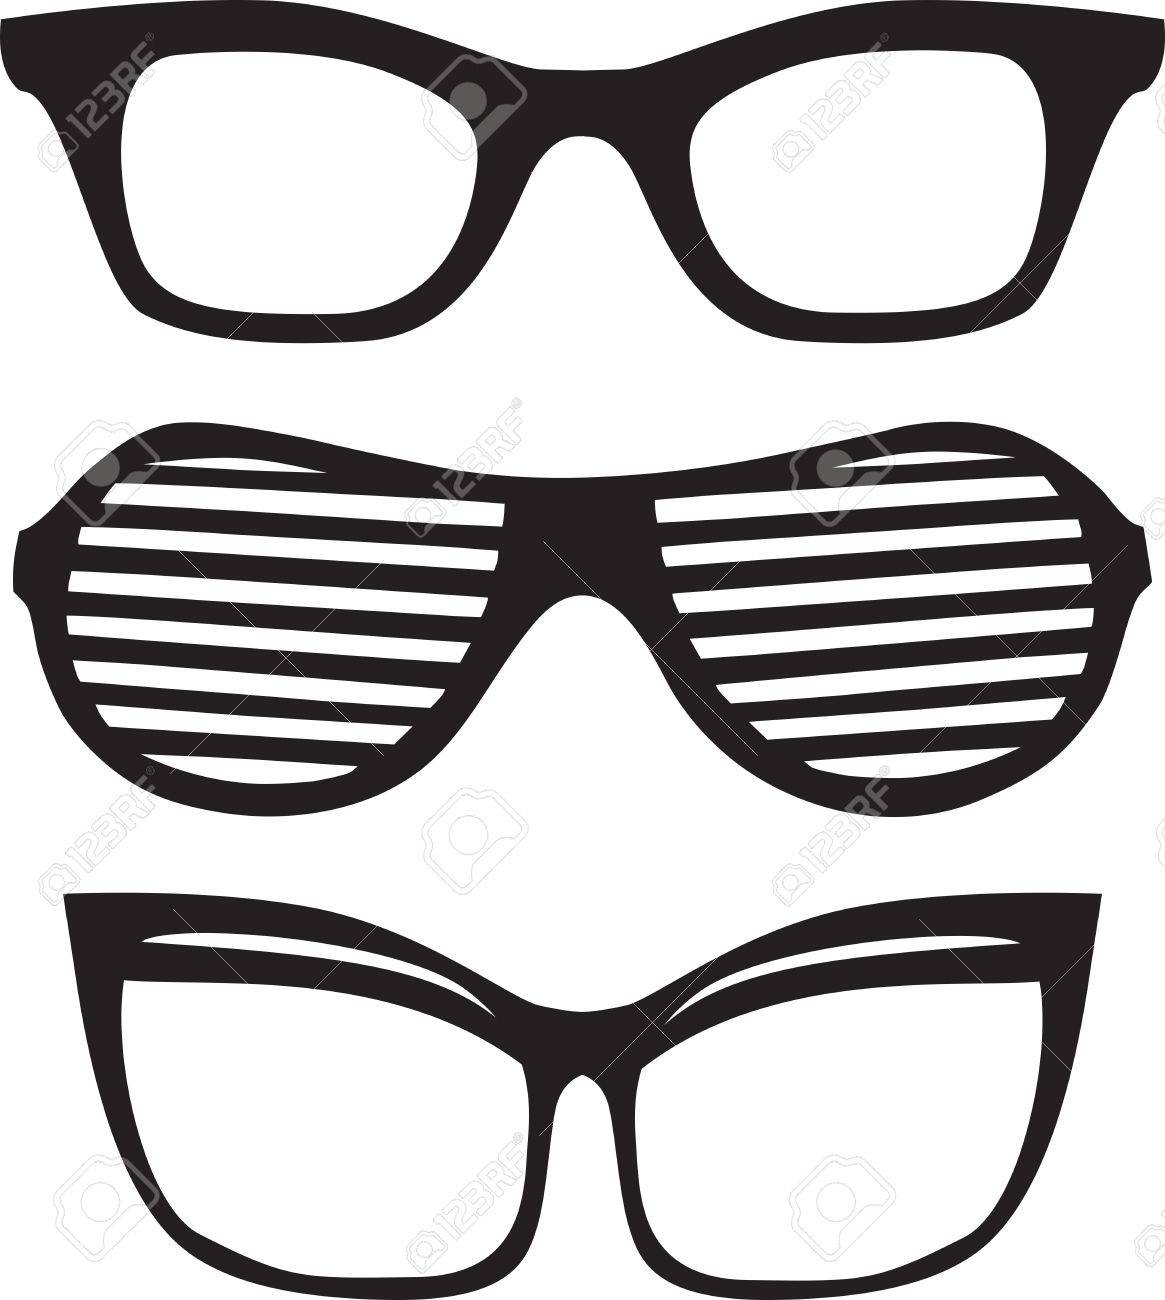 b291c47246 Three different glasses vector frames on white background stock vector jpg  1165x1300 Glasses frames vector